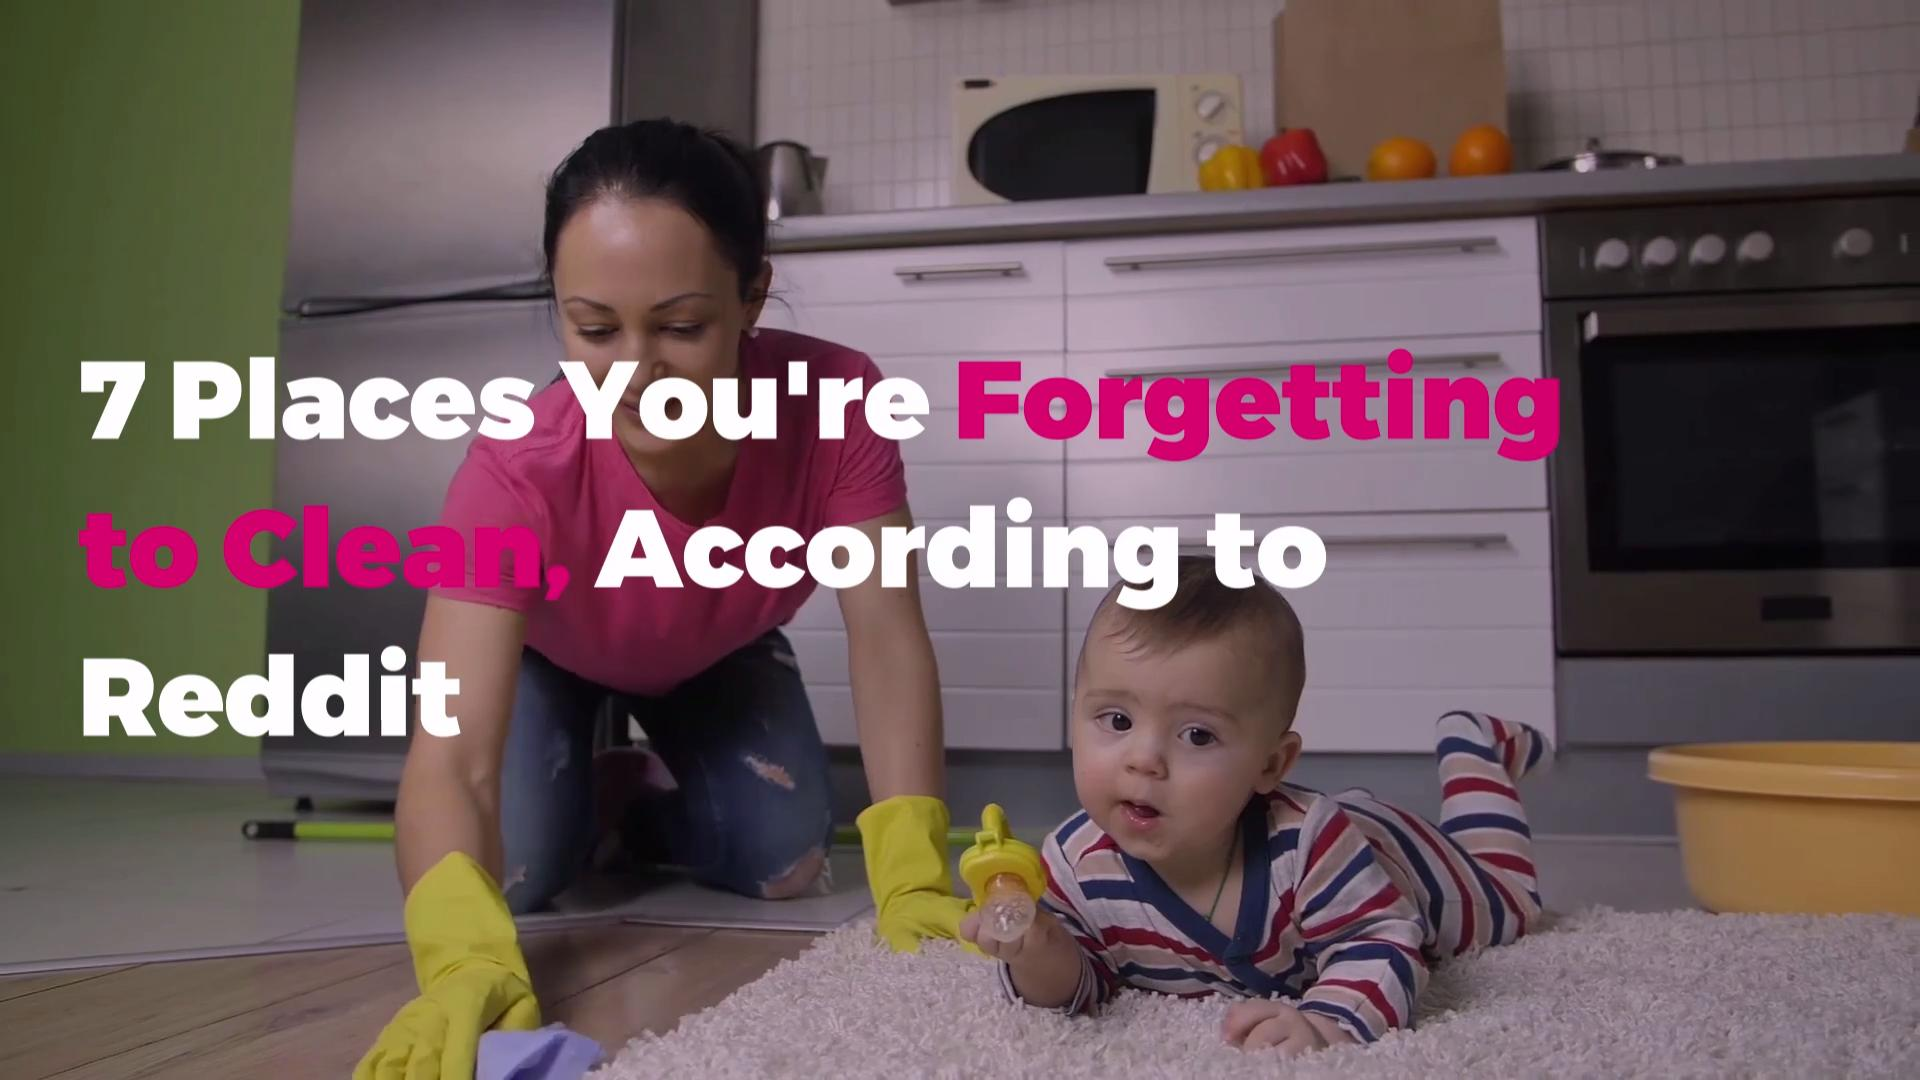 7 Places You're Forgetting to Clean, According to Reddit